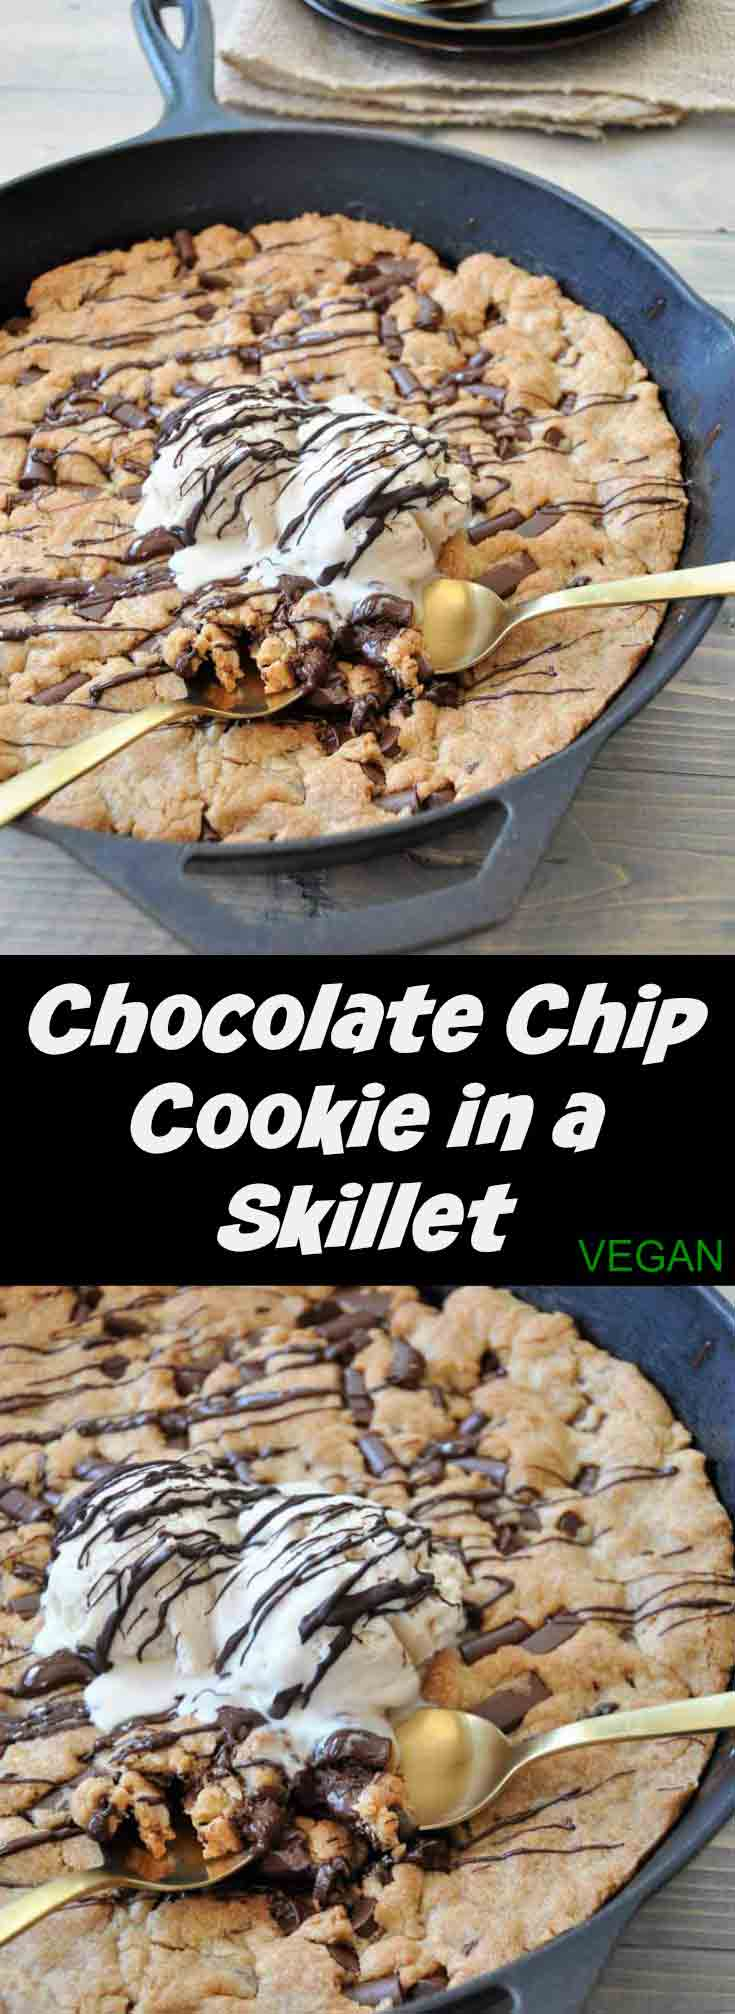 One big vegan chocolate chip cookie in an iron skillet! The perfect dessert for a party. Dairy and egg-free.